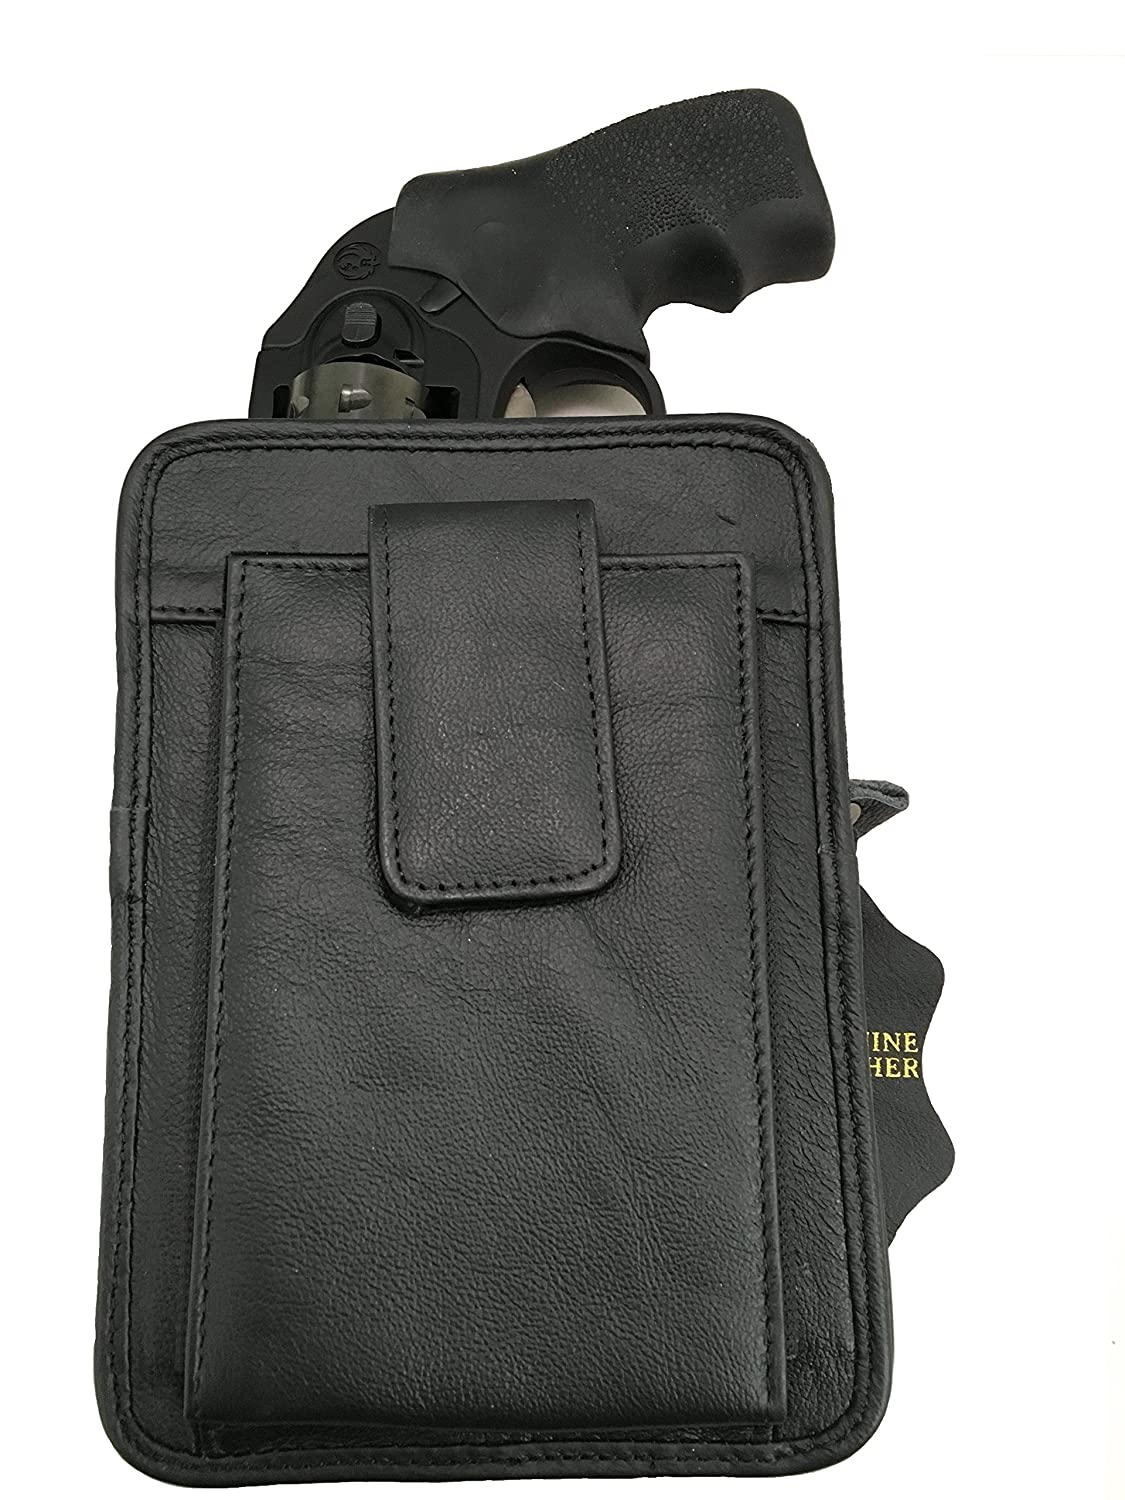 phone case gun holster